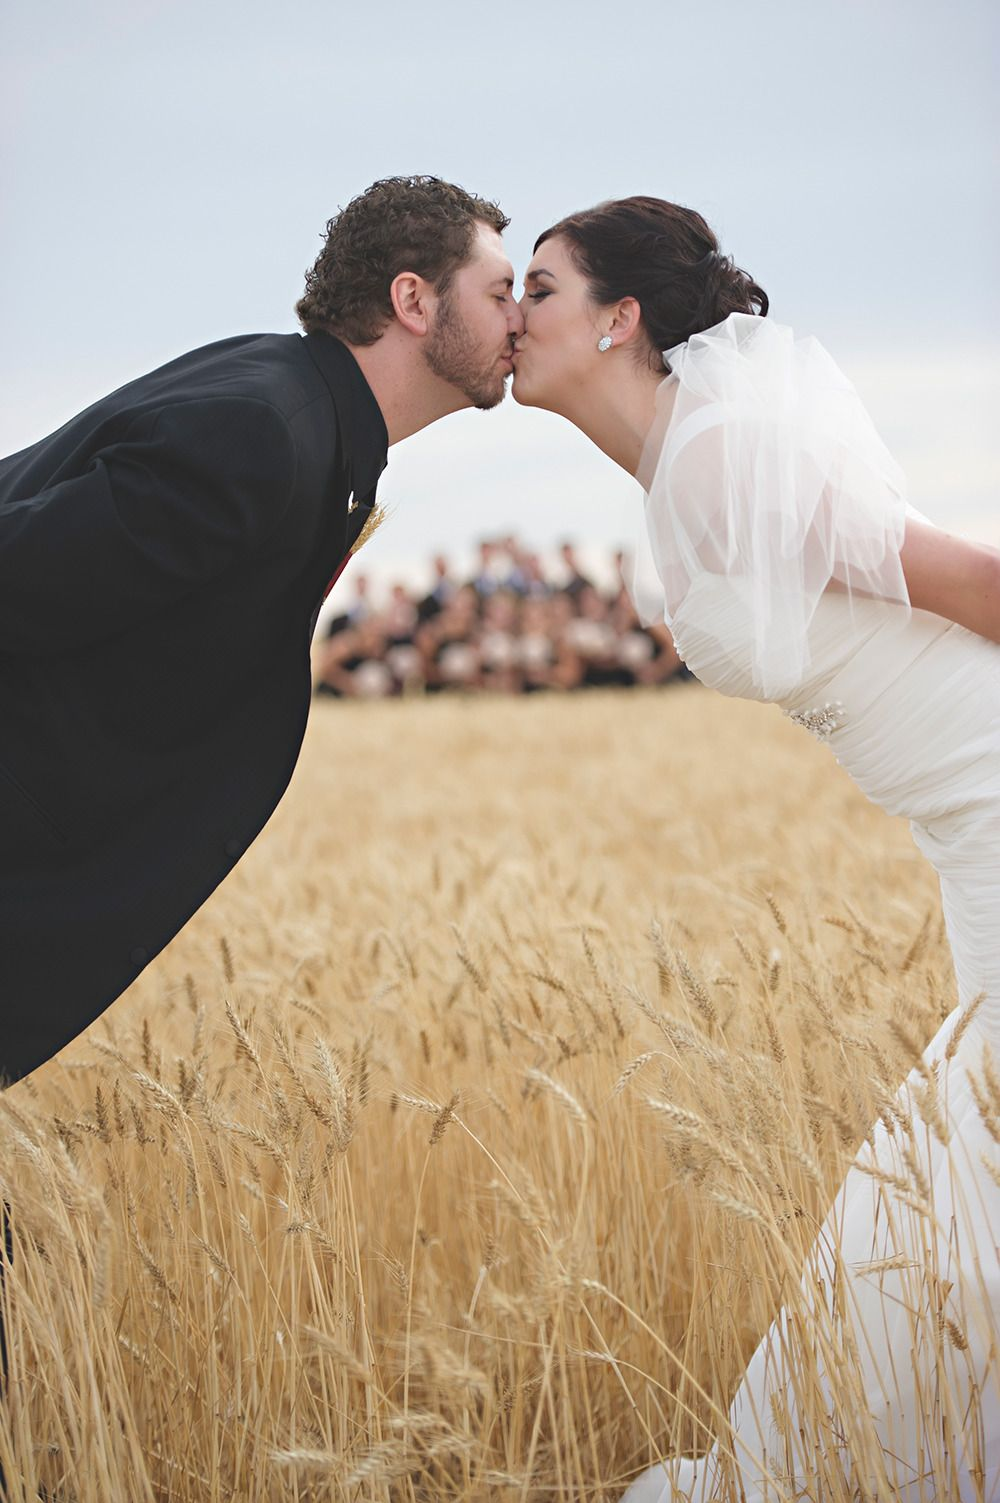 Saskatchewan Wedding Photography: Saskatchewan Wedding From Prairie Lane Photography